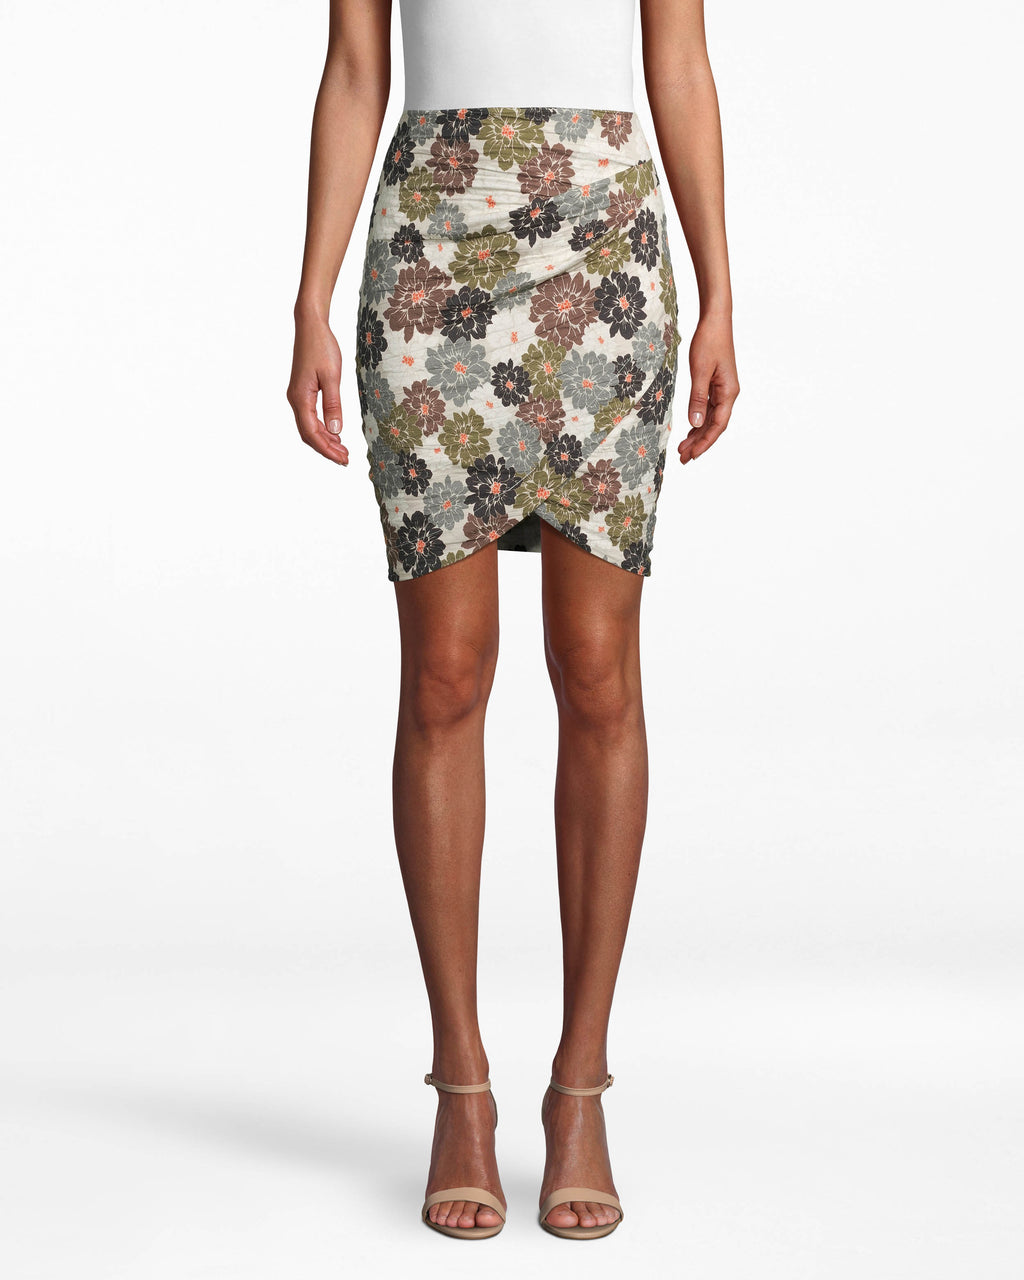 CS17985 - CAMO DELILAH COTTON METAL FAUX WRAP SKIRT - bottoms - skirts - DESIGNED IN OUR SIGNATURE COTTON METAL, THIS PRINTED MINI SKIRT FEATURES A FLATTERING FAUX WRAP FRONT. THIS FITTED STYLE HITS JUST ABOVE THE KNEE AND HAS A BACK ZIPPER FOR CLOSURE. Add 1 line break STYLIST TIP: WEAR WITH A WHITE TOP AND WHITE SNEAKERS FOR A CASUAL BUT COOL LOOK.